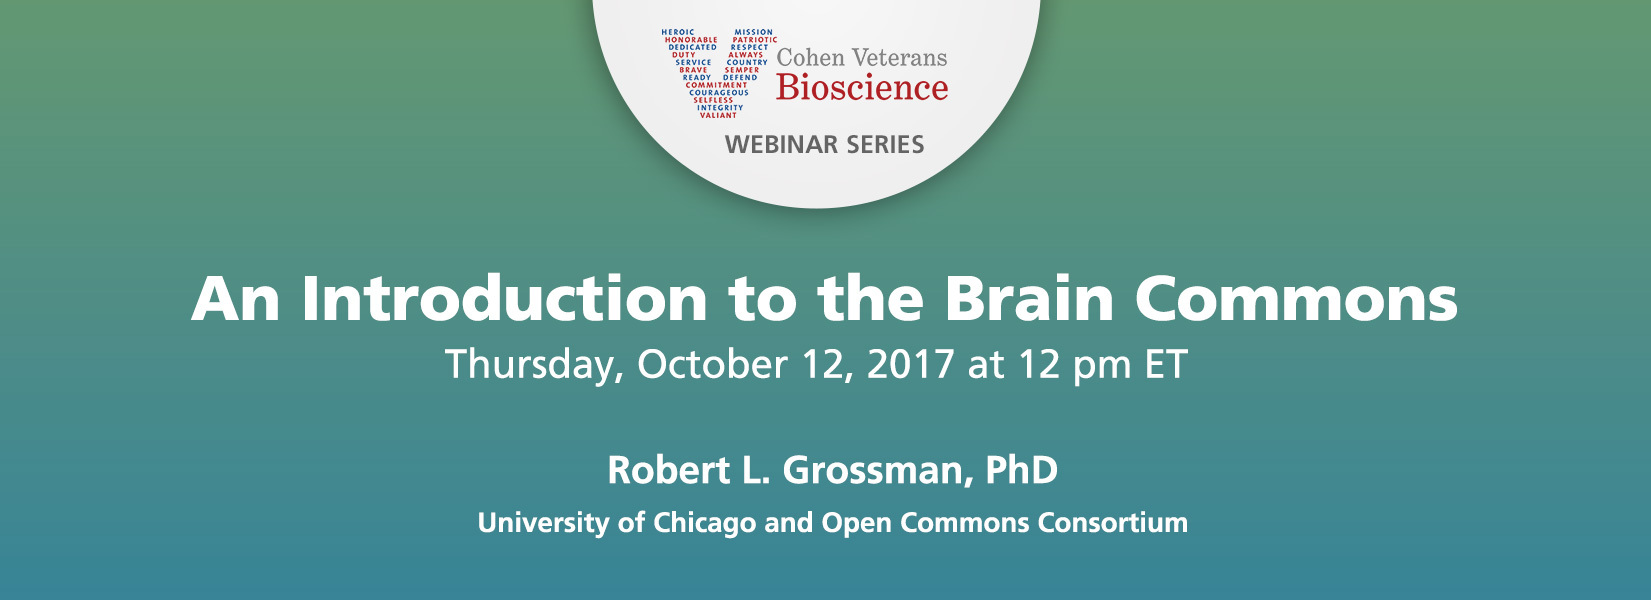 Cohen Veterans Bioscience Webinar Series - October 2017 Webinar